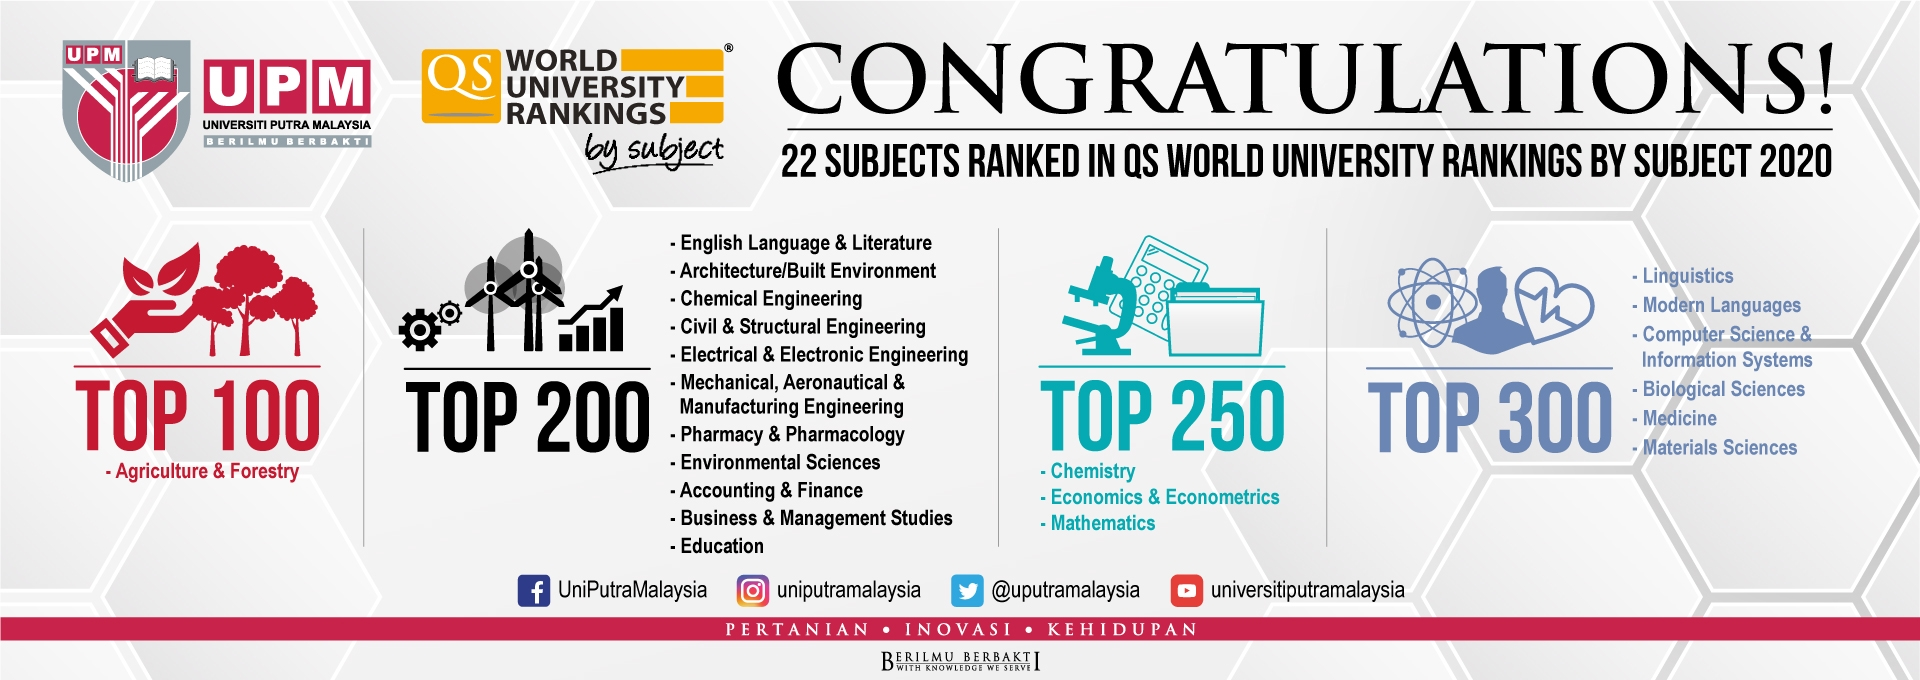 12 subjects from Universiti Putra Malaysia (UPM) were ranked among the best 200 in QS World University Rankings by Subject 2020